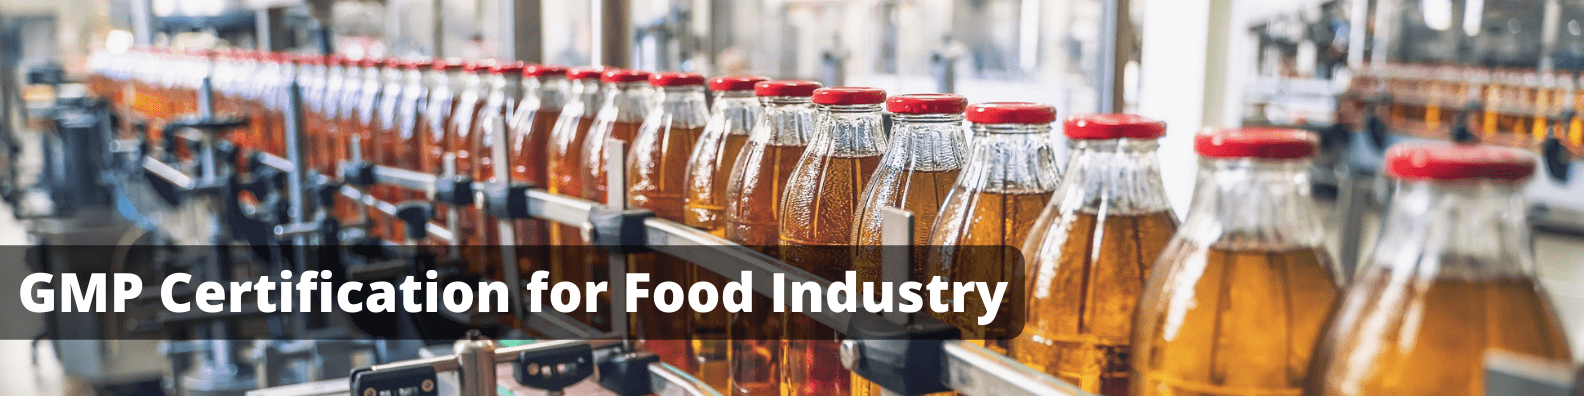 GMP for Food Industry In Sri Lanka